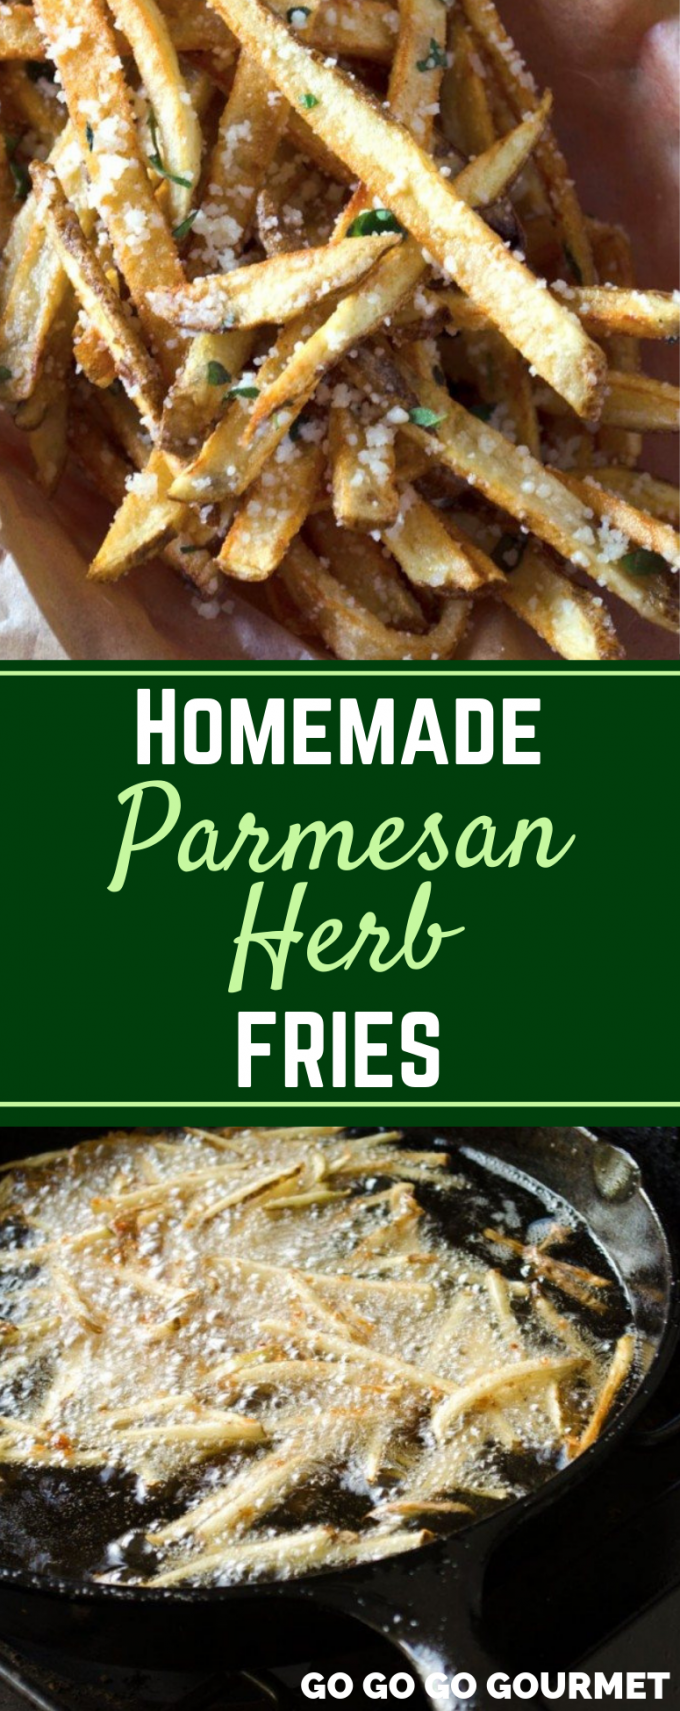 Forget the frozen fries, these homemade Parmesan Herb Fries are made with lots of garlic and fries in olive oil for a semi healthy side dish that everyone is sure to love! You won't believe how easy this recipe is! #gogogogourmet #parmesanherbfries #garlicparmesanfries #homemadefrenchfries via @gogogogourmet